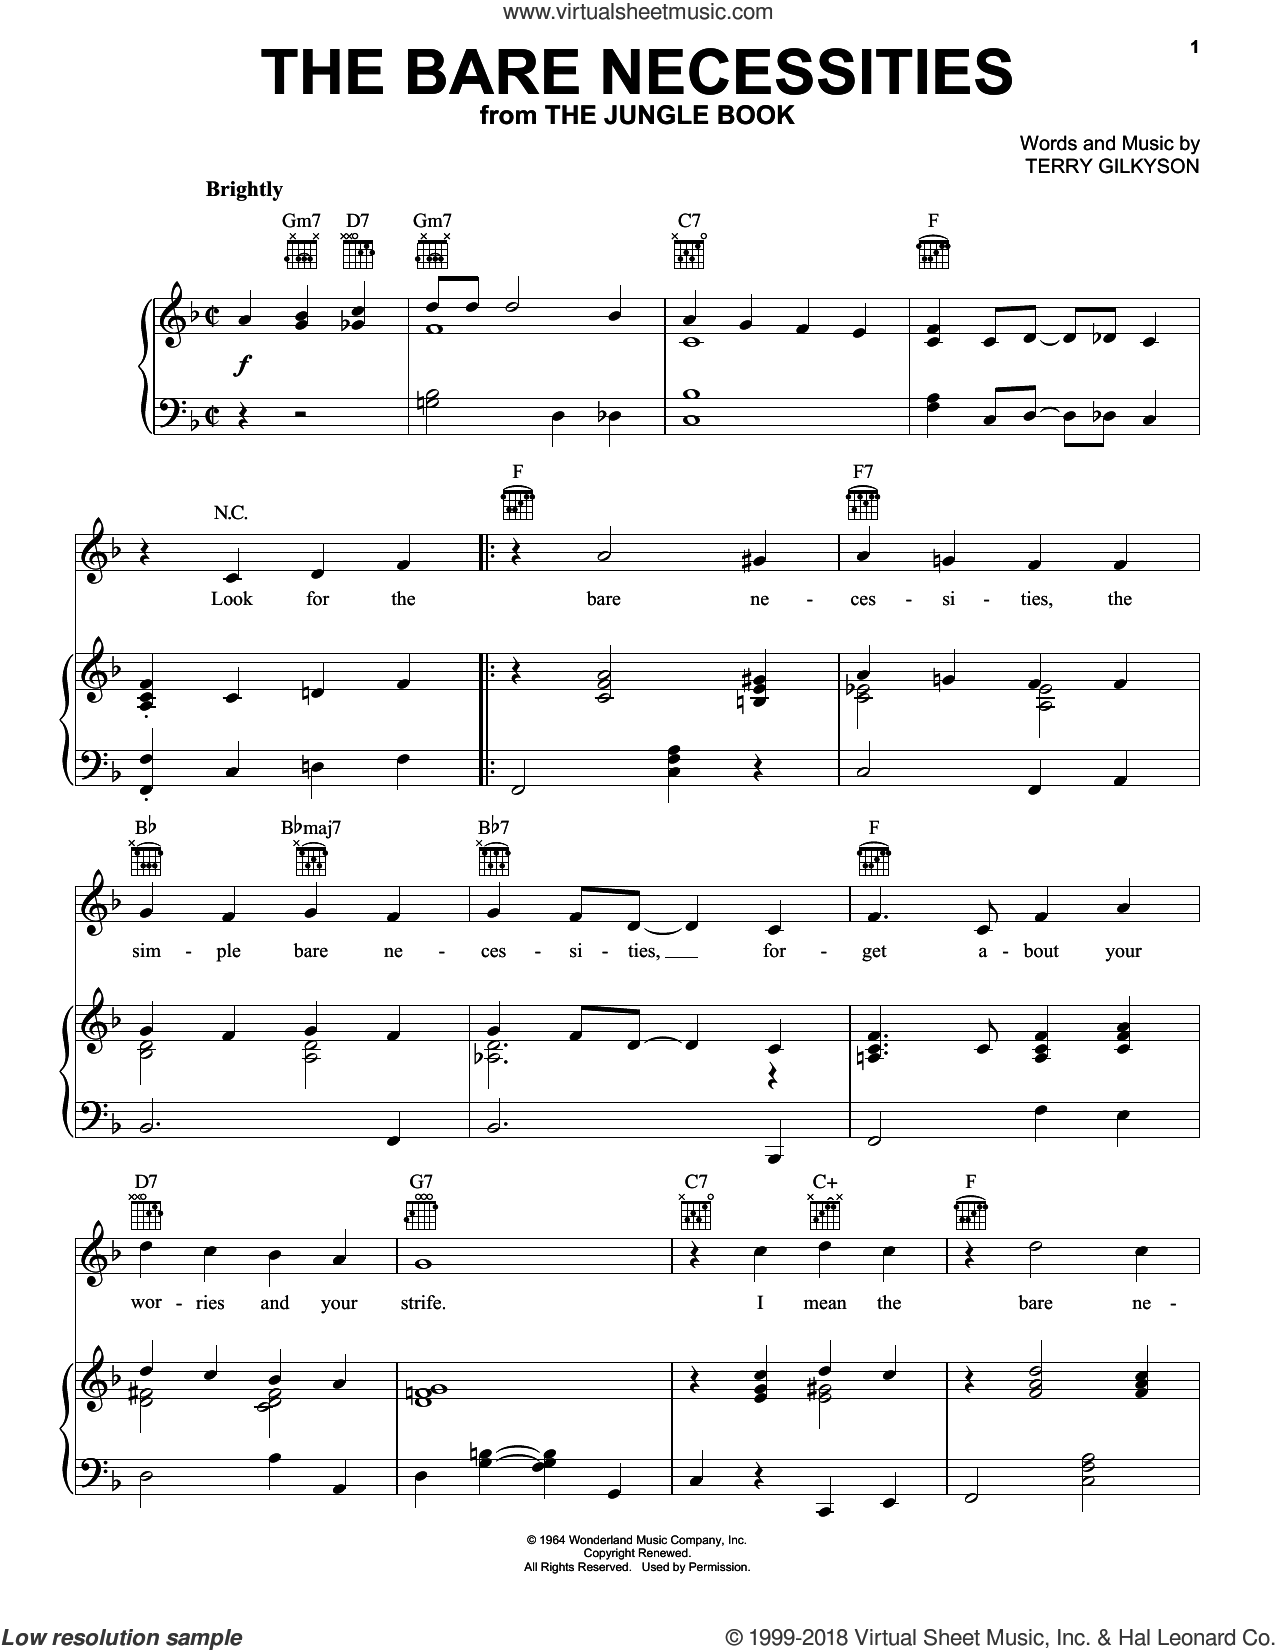 The Bare Necessities sheet music for voice, piano or guitar by Terry Gilkyson